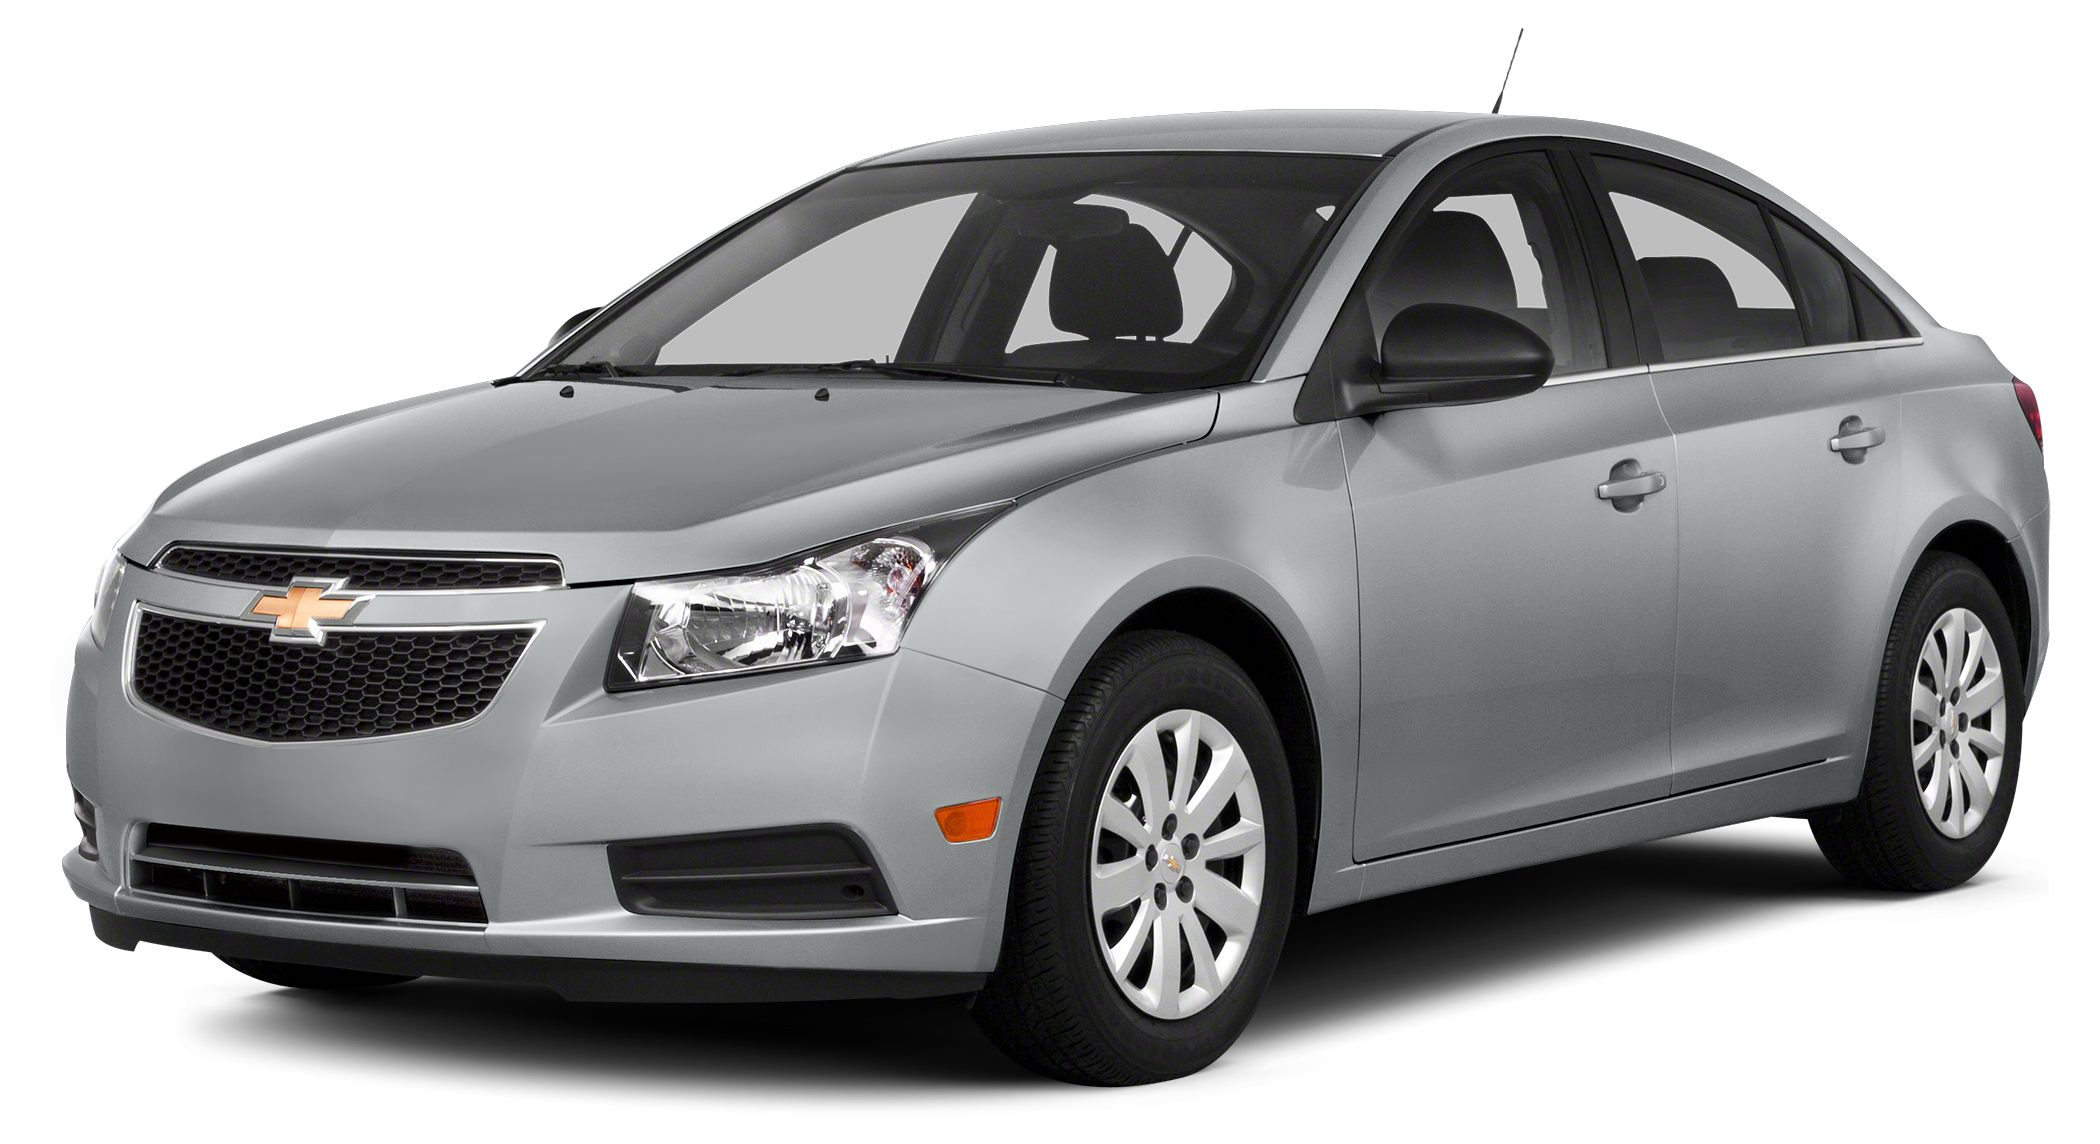 2014 Chevrolet Cruze LS OUR PRICESYoure probably wondering why our prices are so much lower than